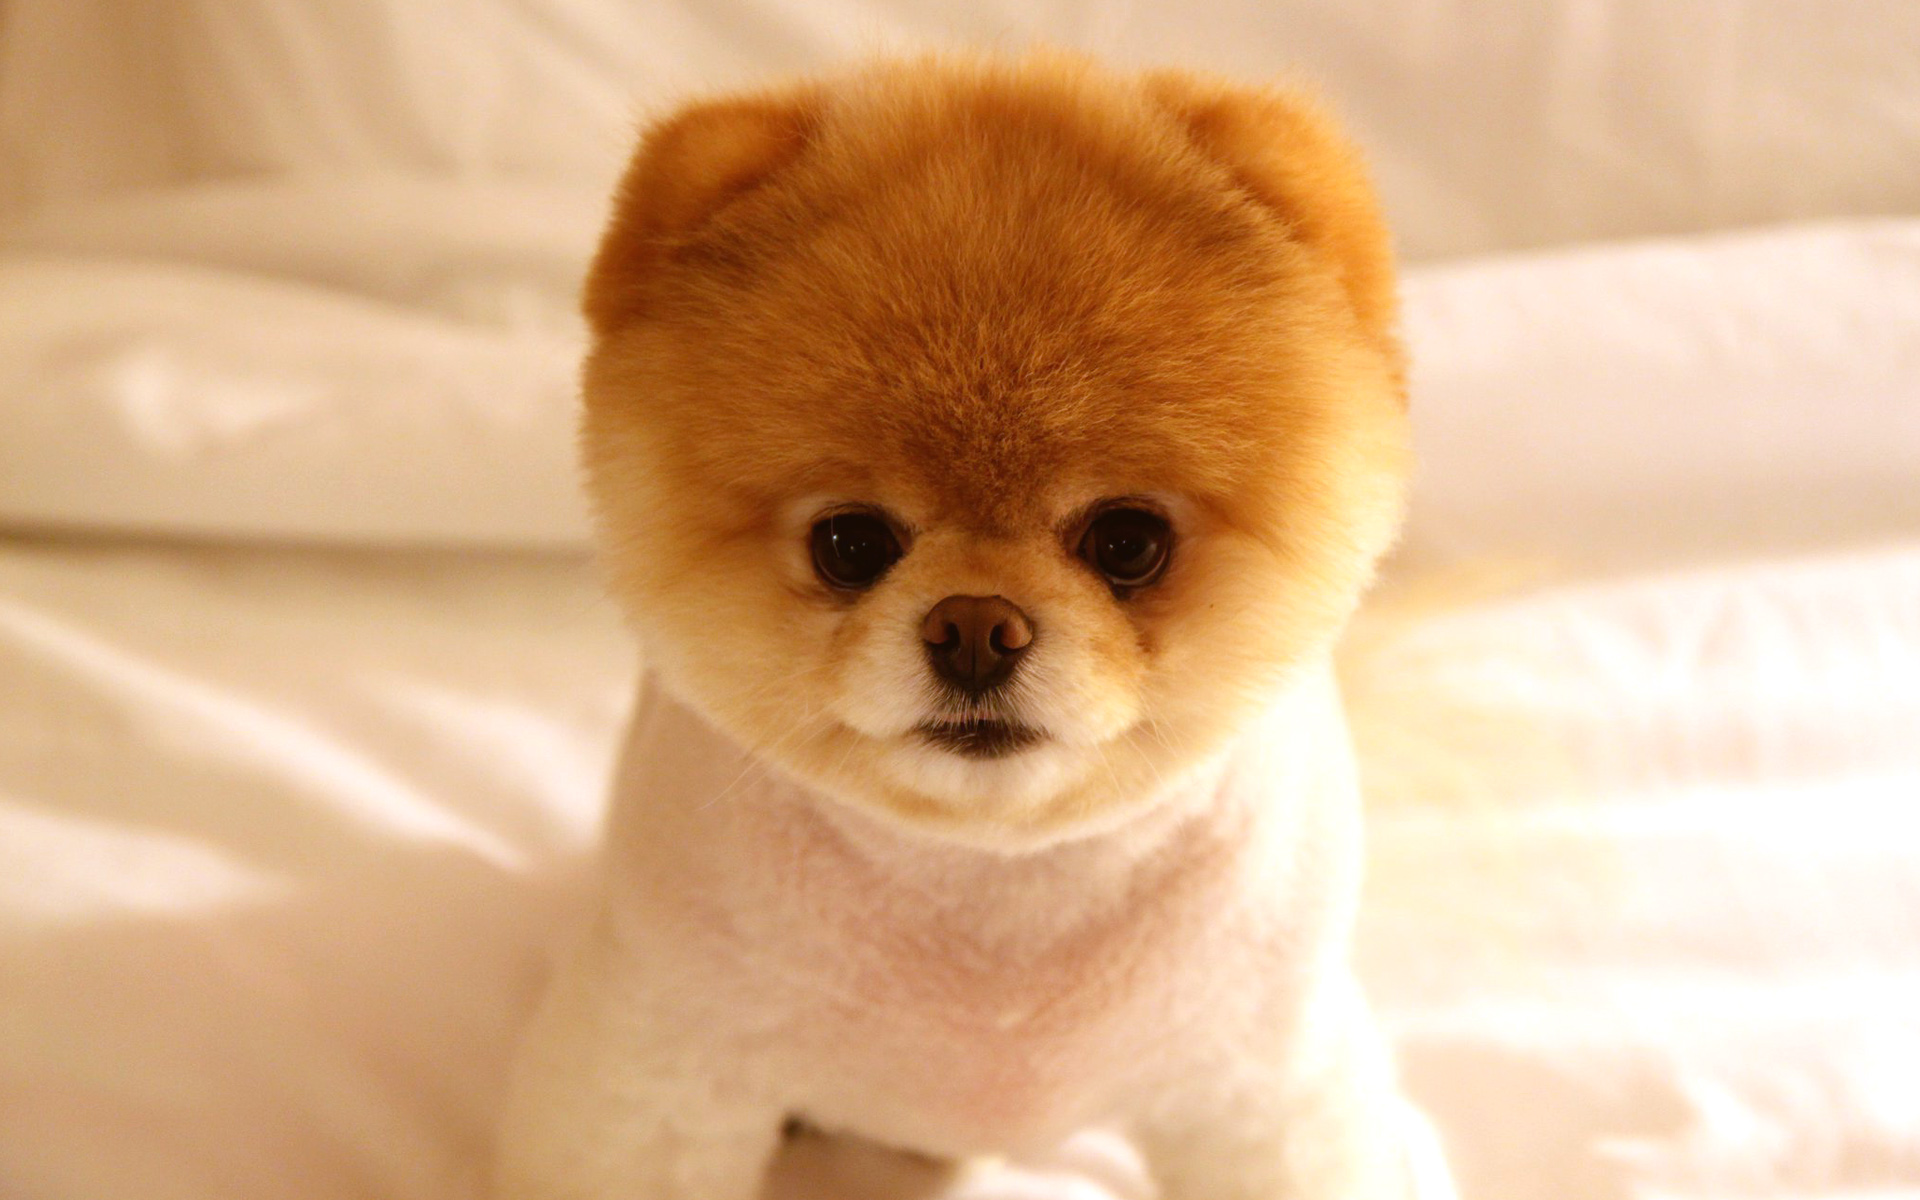 Cute Dog Boo Wallpapers HD Wallpapers 1920x1200